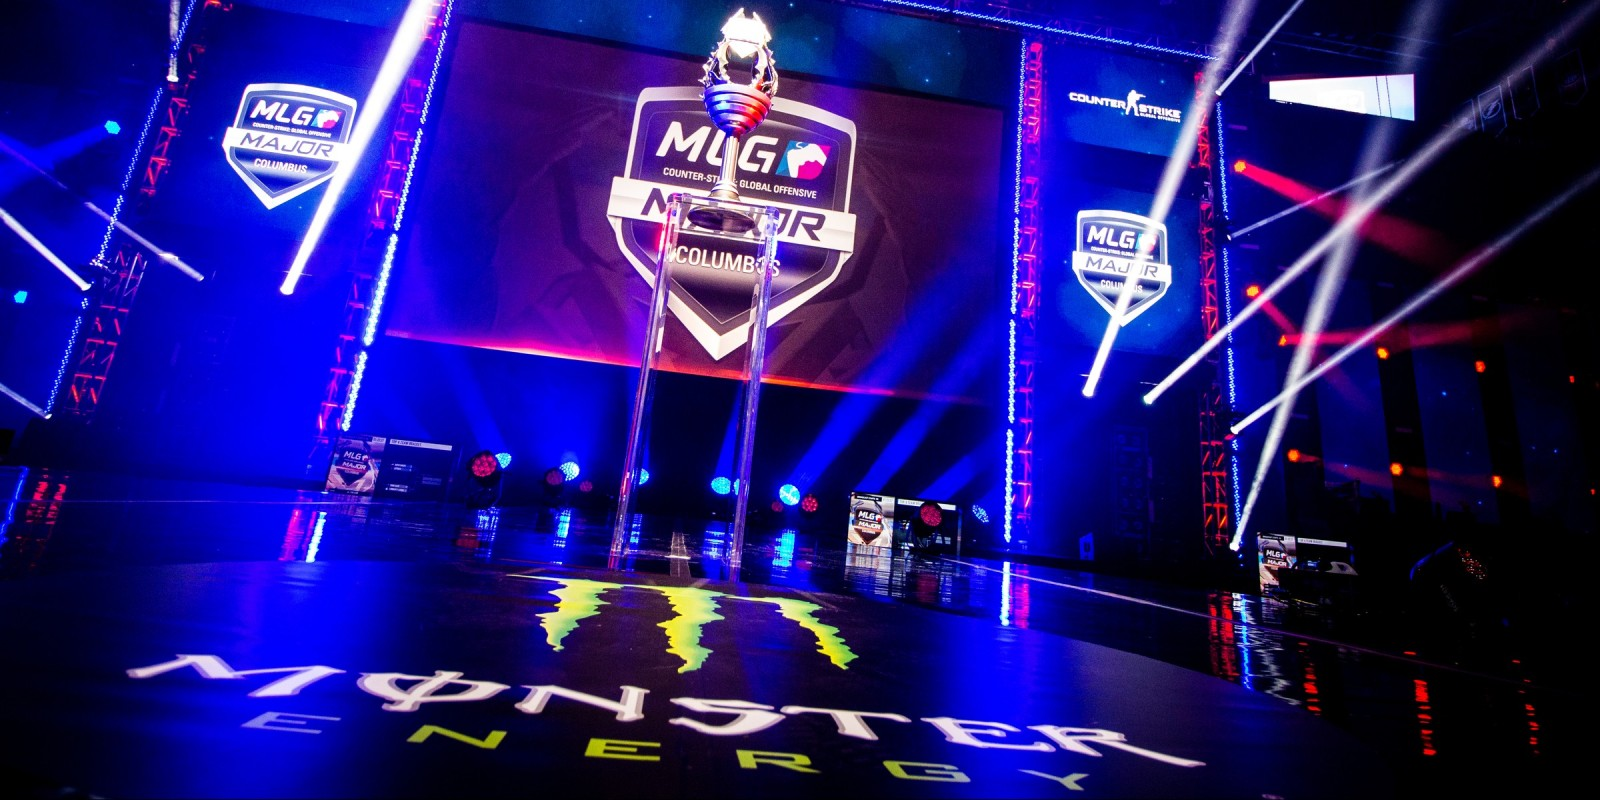 Monster Energy at the 2016 MLG SCGO in Ohio.